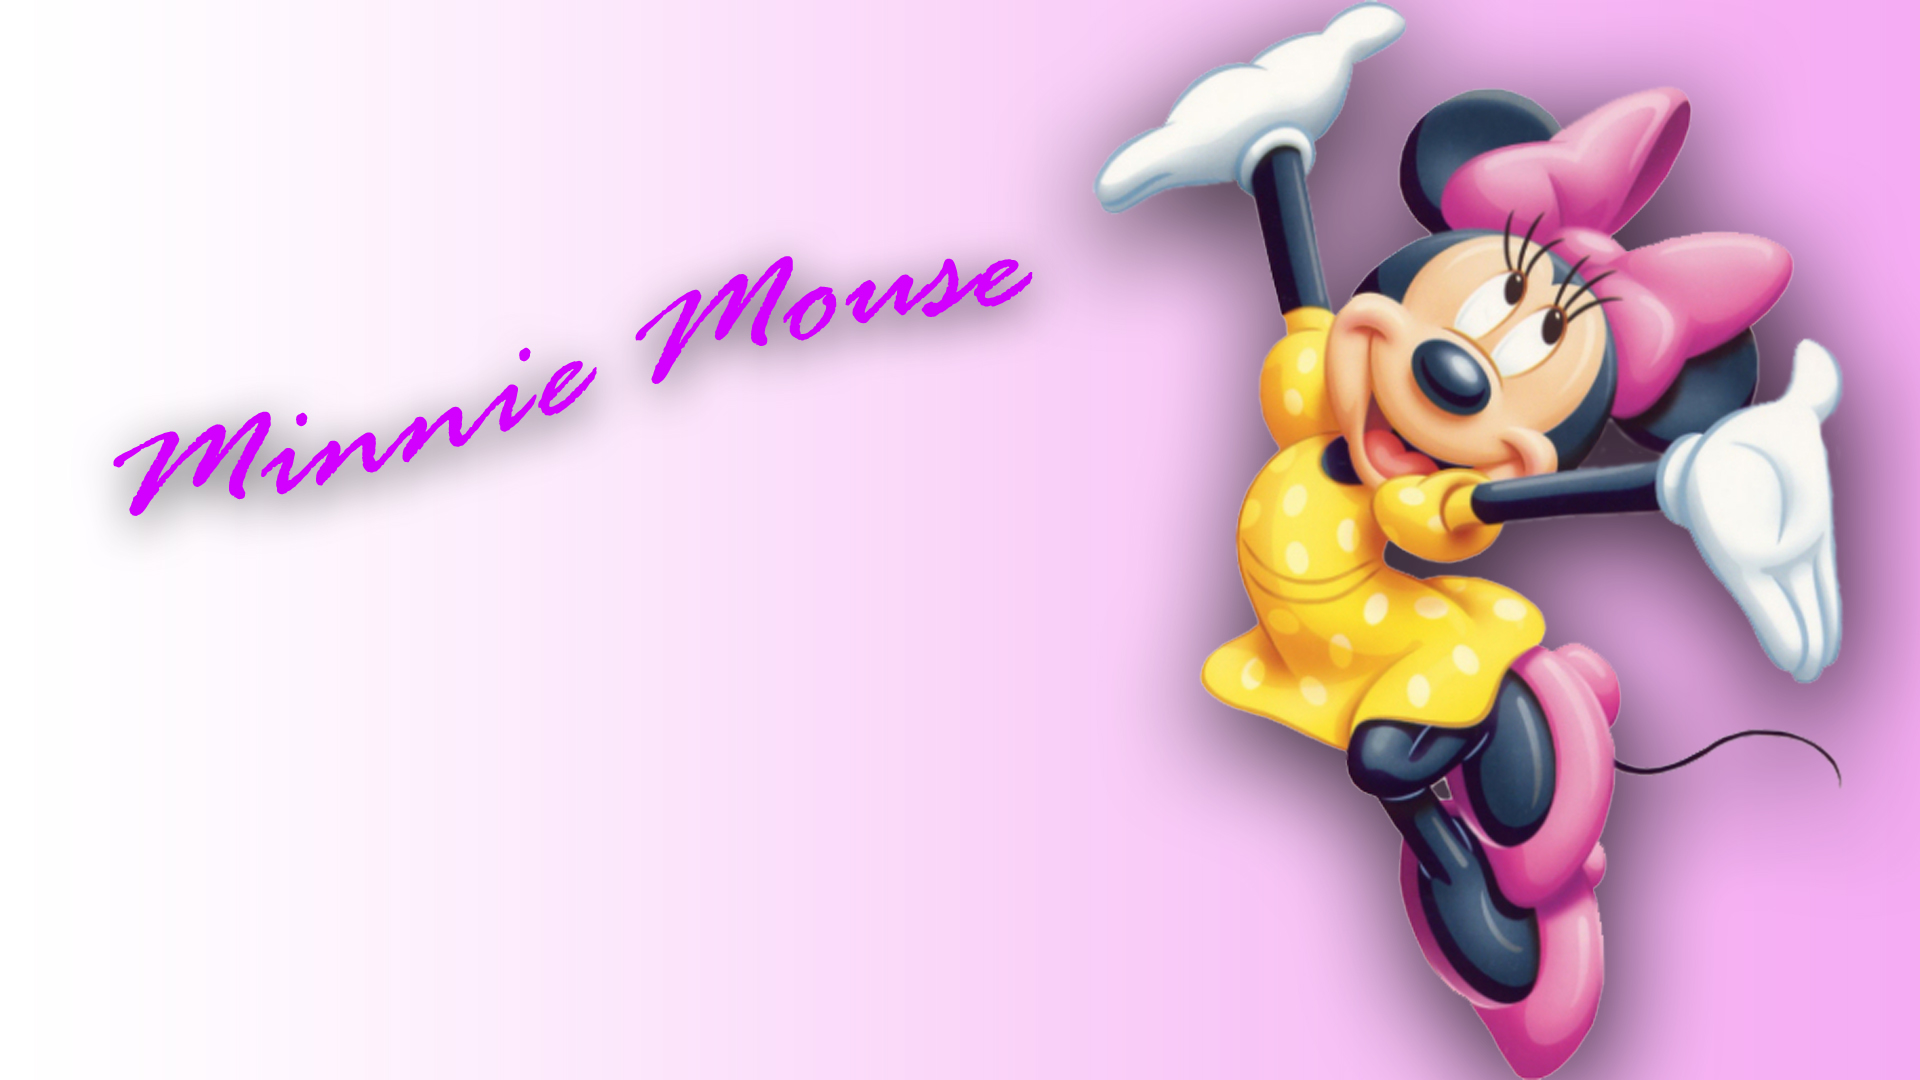 Cute Cartoon Wallpapers For Mobile Hd Minnie Mouse Wallpapers Pictures Images